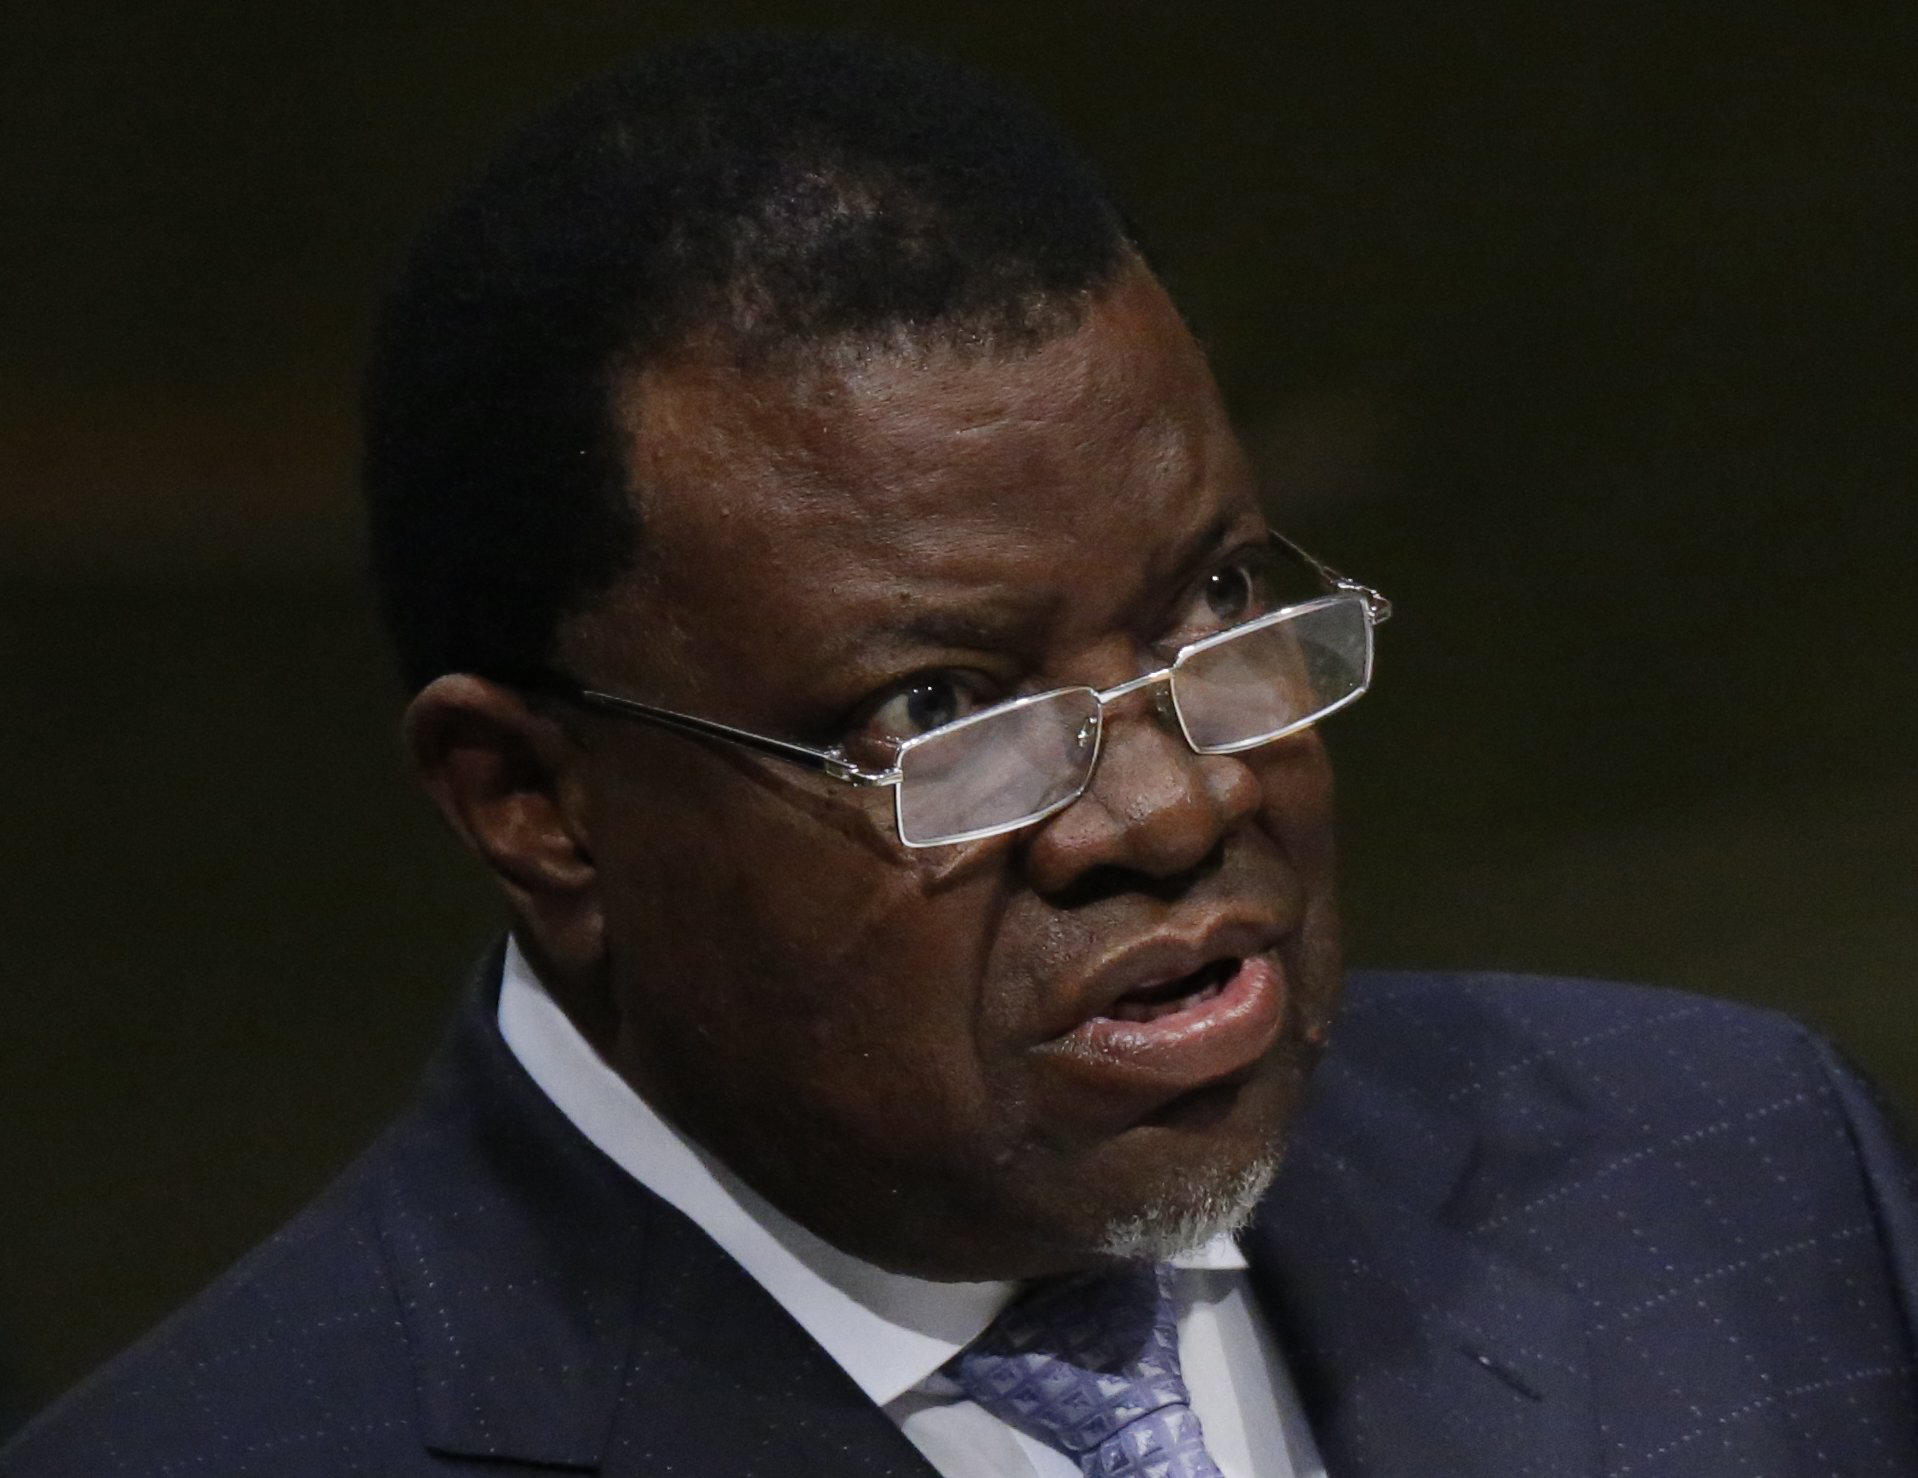 President Hage Geingob of Namibia addresses attendees during the 70th session of the United Nations General Assembly at the U.N. Headquarters in New York, September 29, 2015.   REUTERS/Carlo Allegri